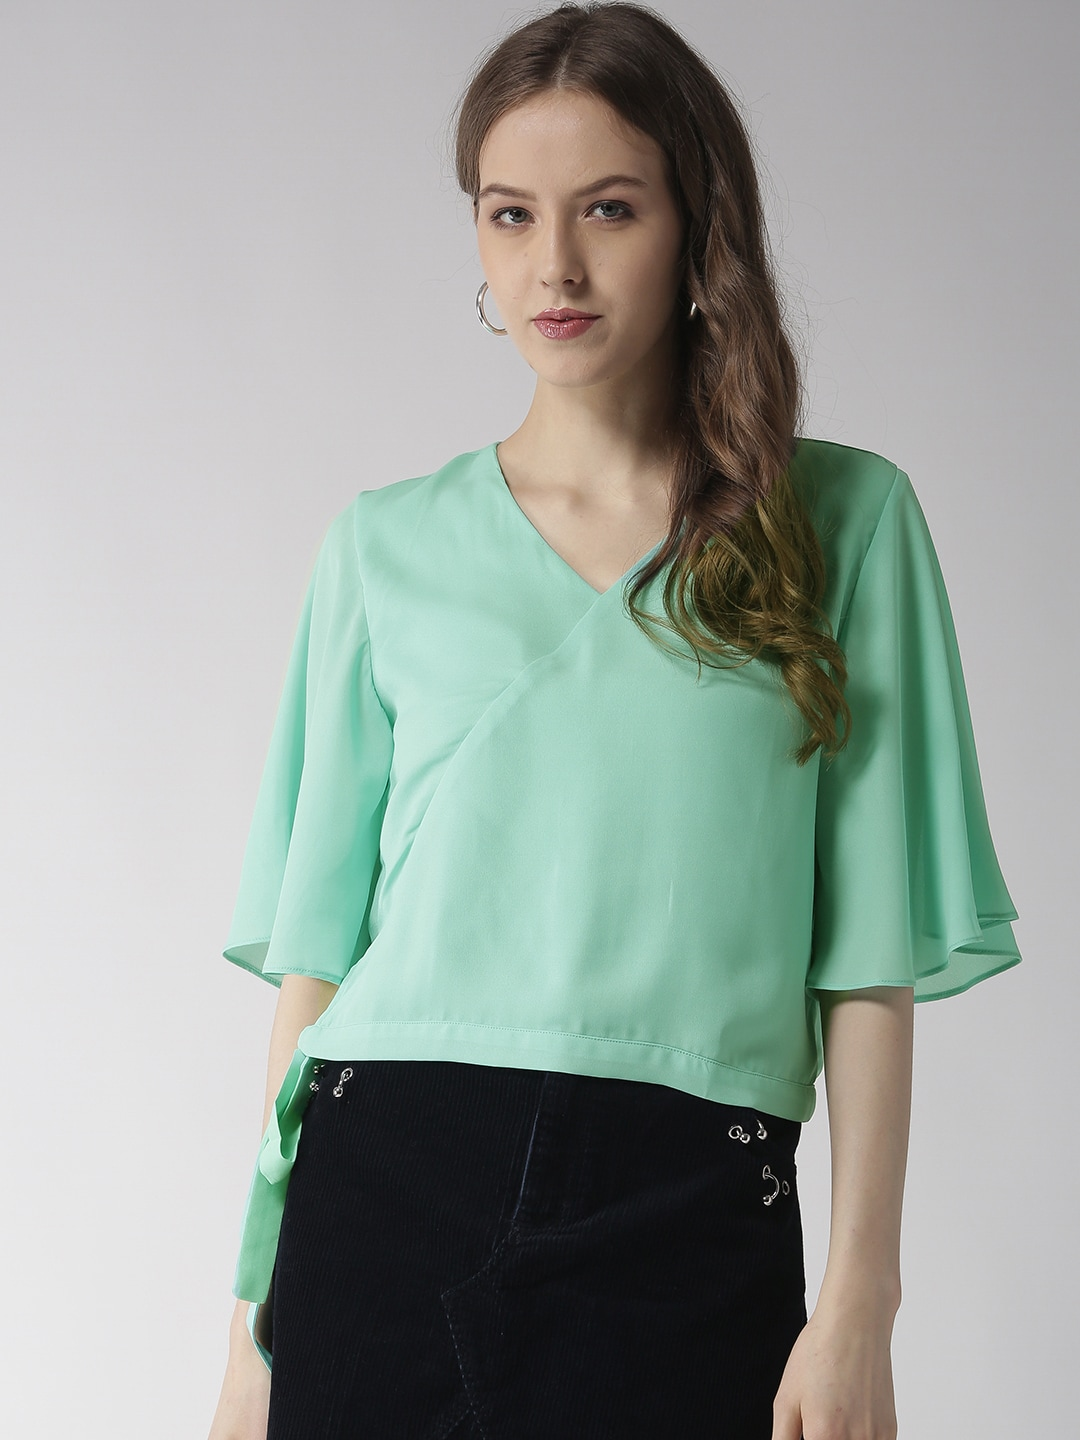 d285e60a48a Madame Tops - Buy Madame Top for Women Online in India